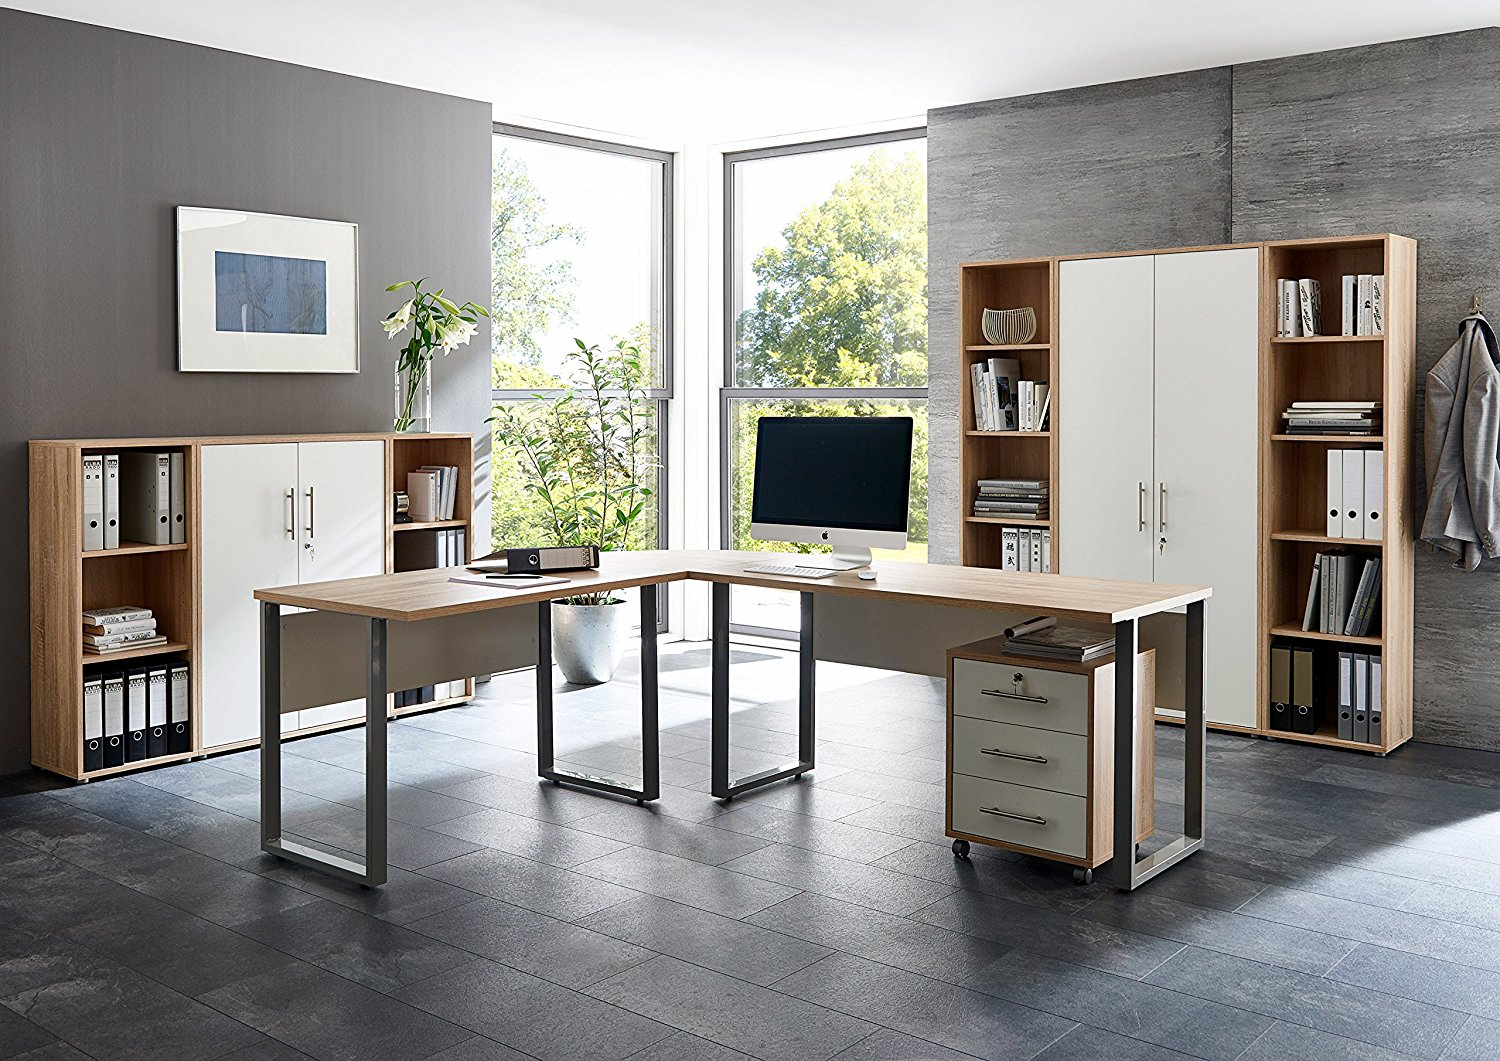 arbeitszimmer office edition in eiche sonoma wei set 5. Black Bedroom Furniture Sets. Home Design Ideas